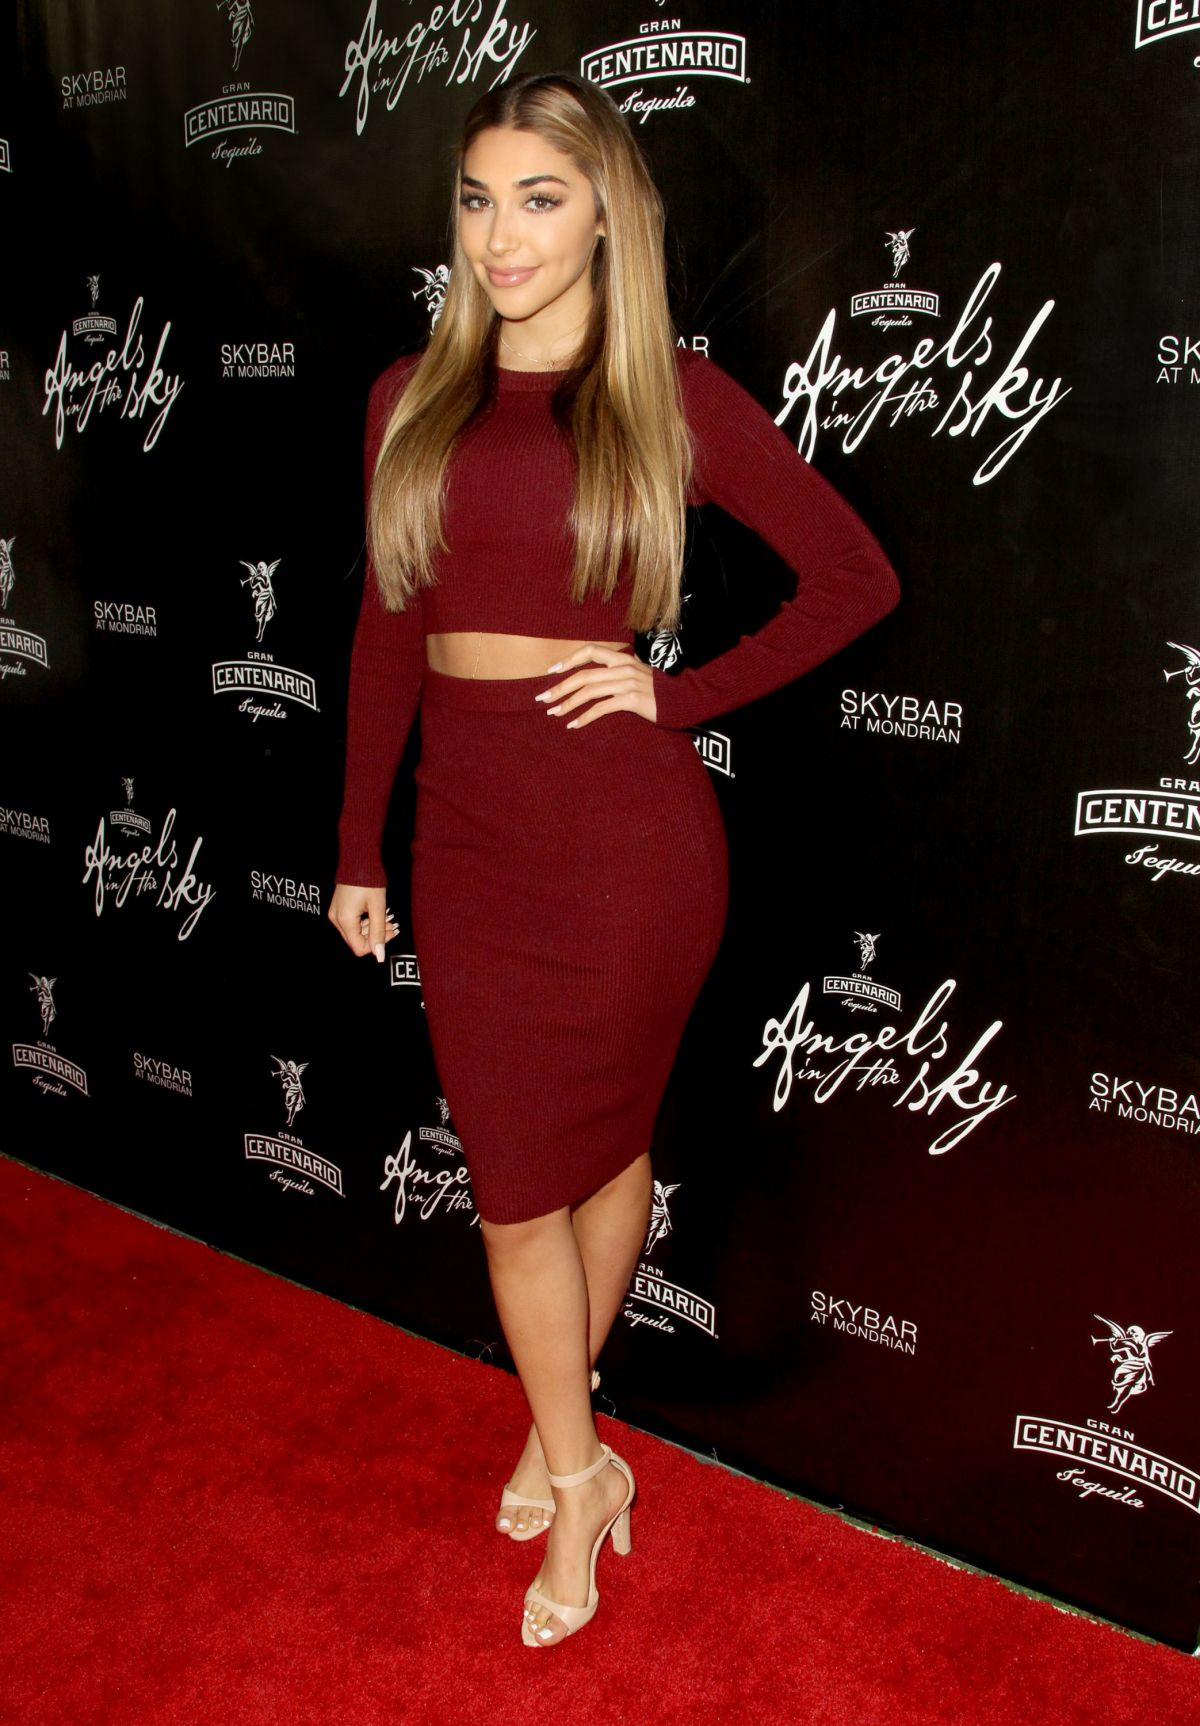 CHANTEL JEFFRIES at Gran Centenario Tequila Presents Angels in the Sky in West Hollywood